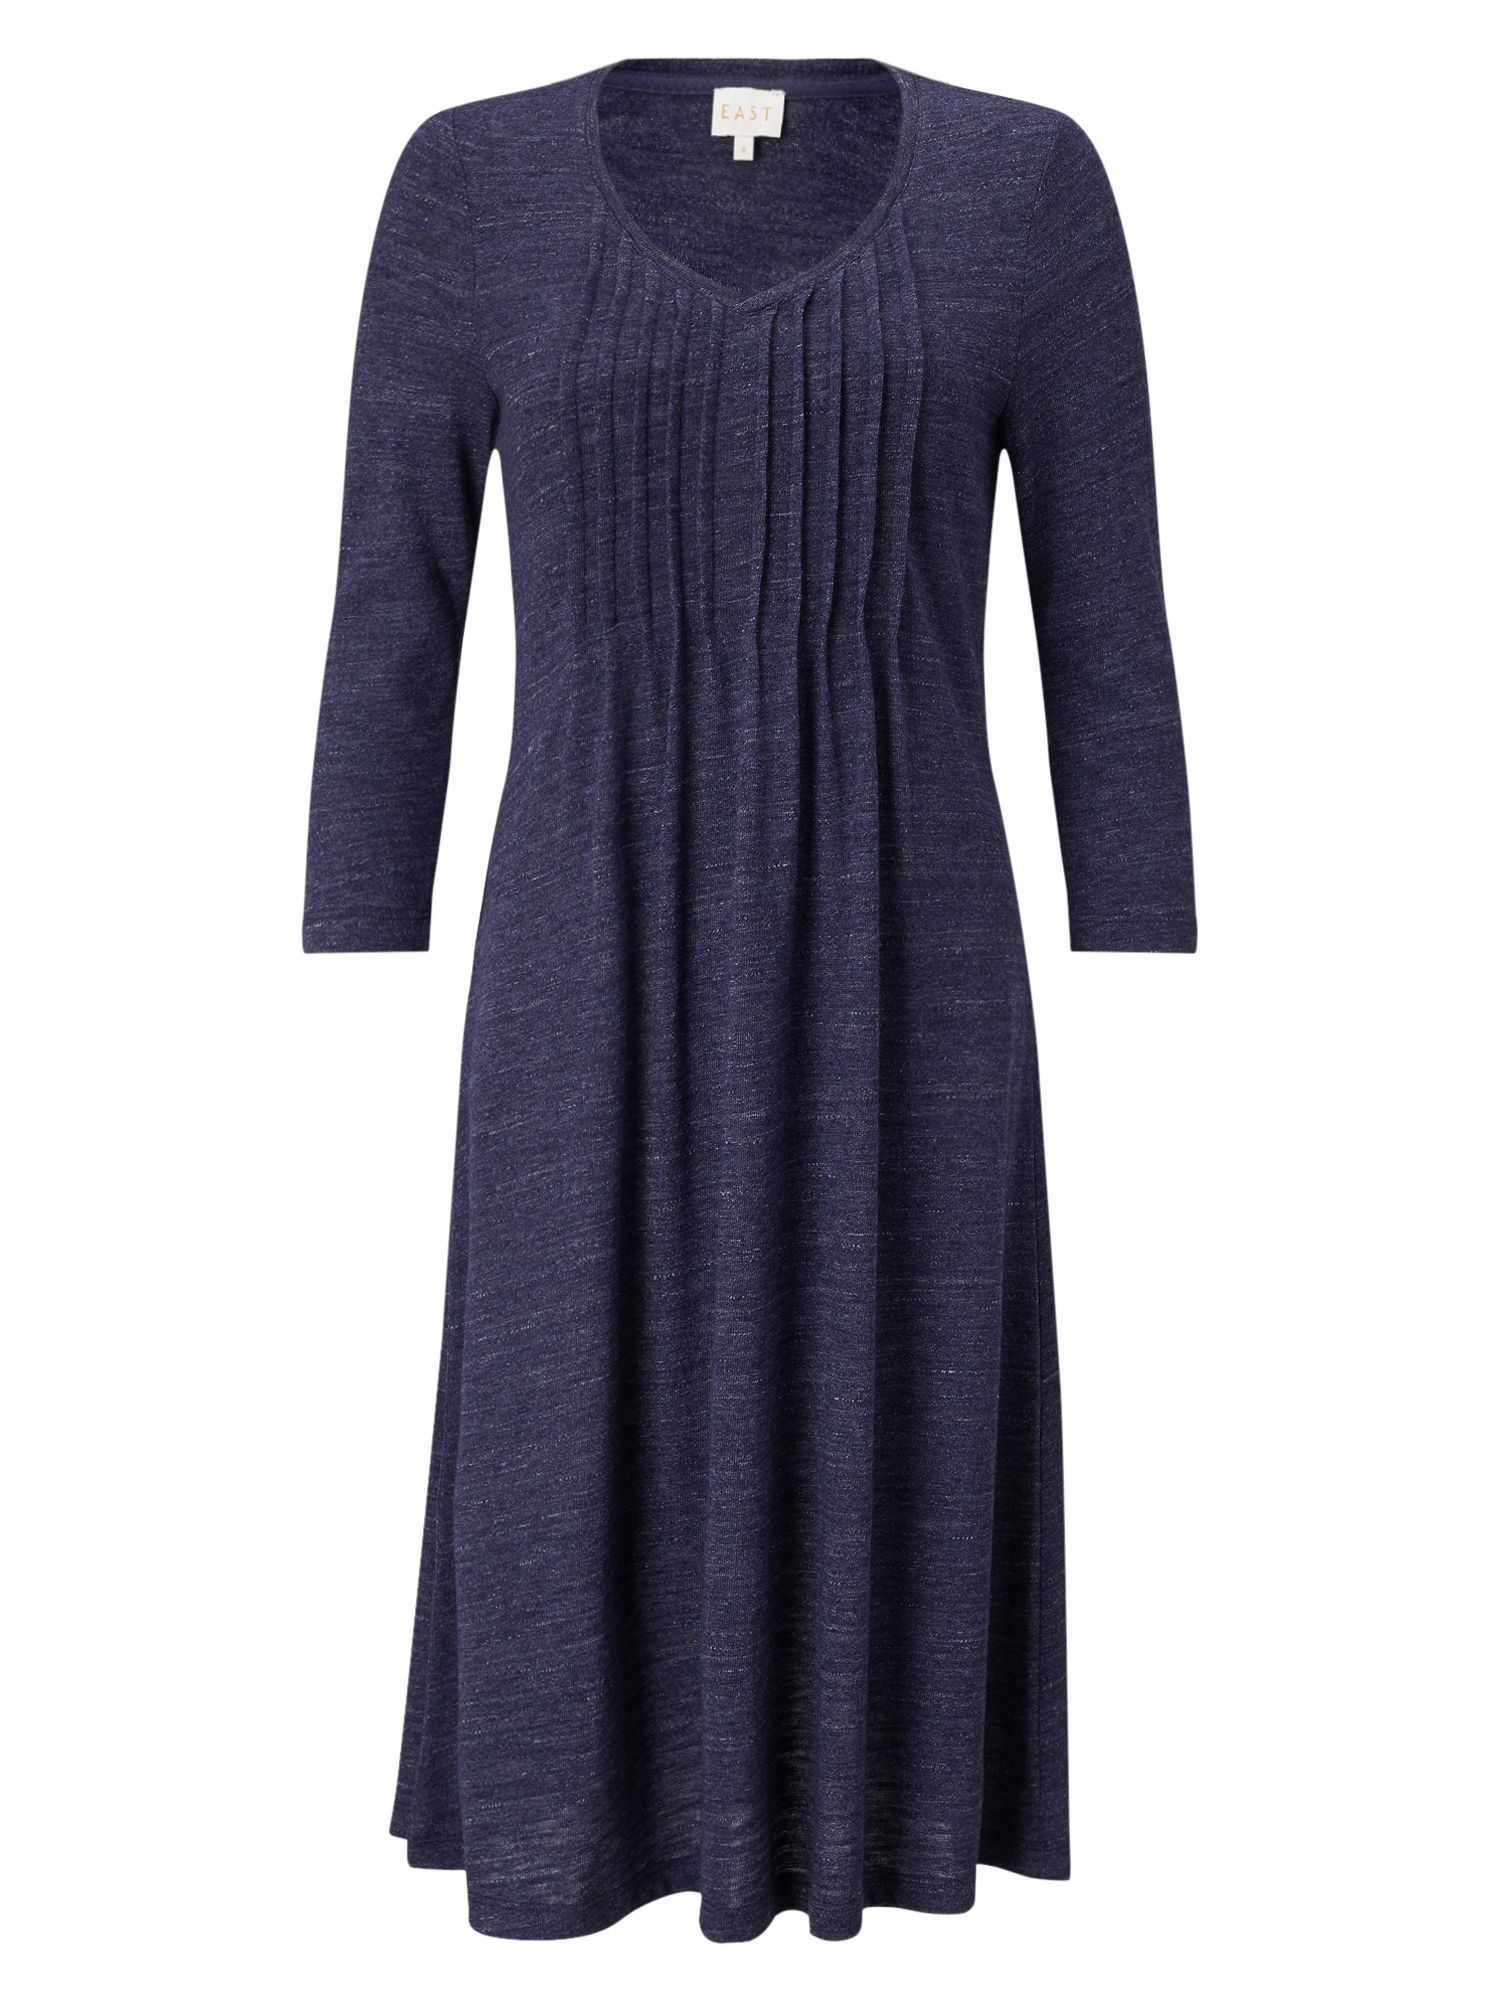 East Pintuck Flared Jersey Dress, Blue